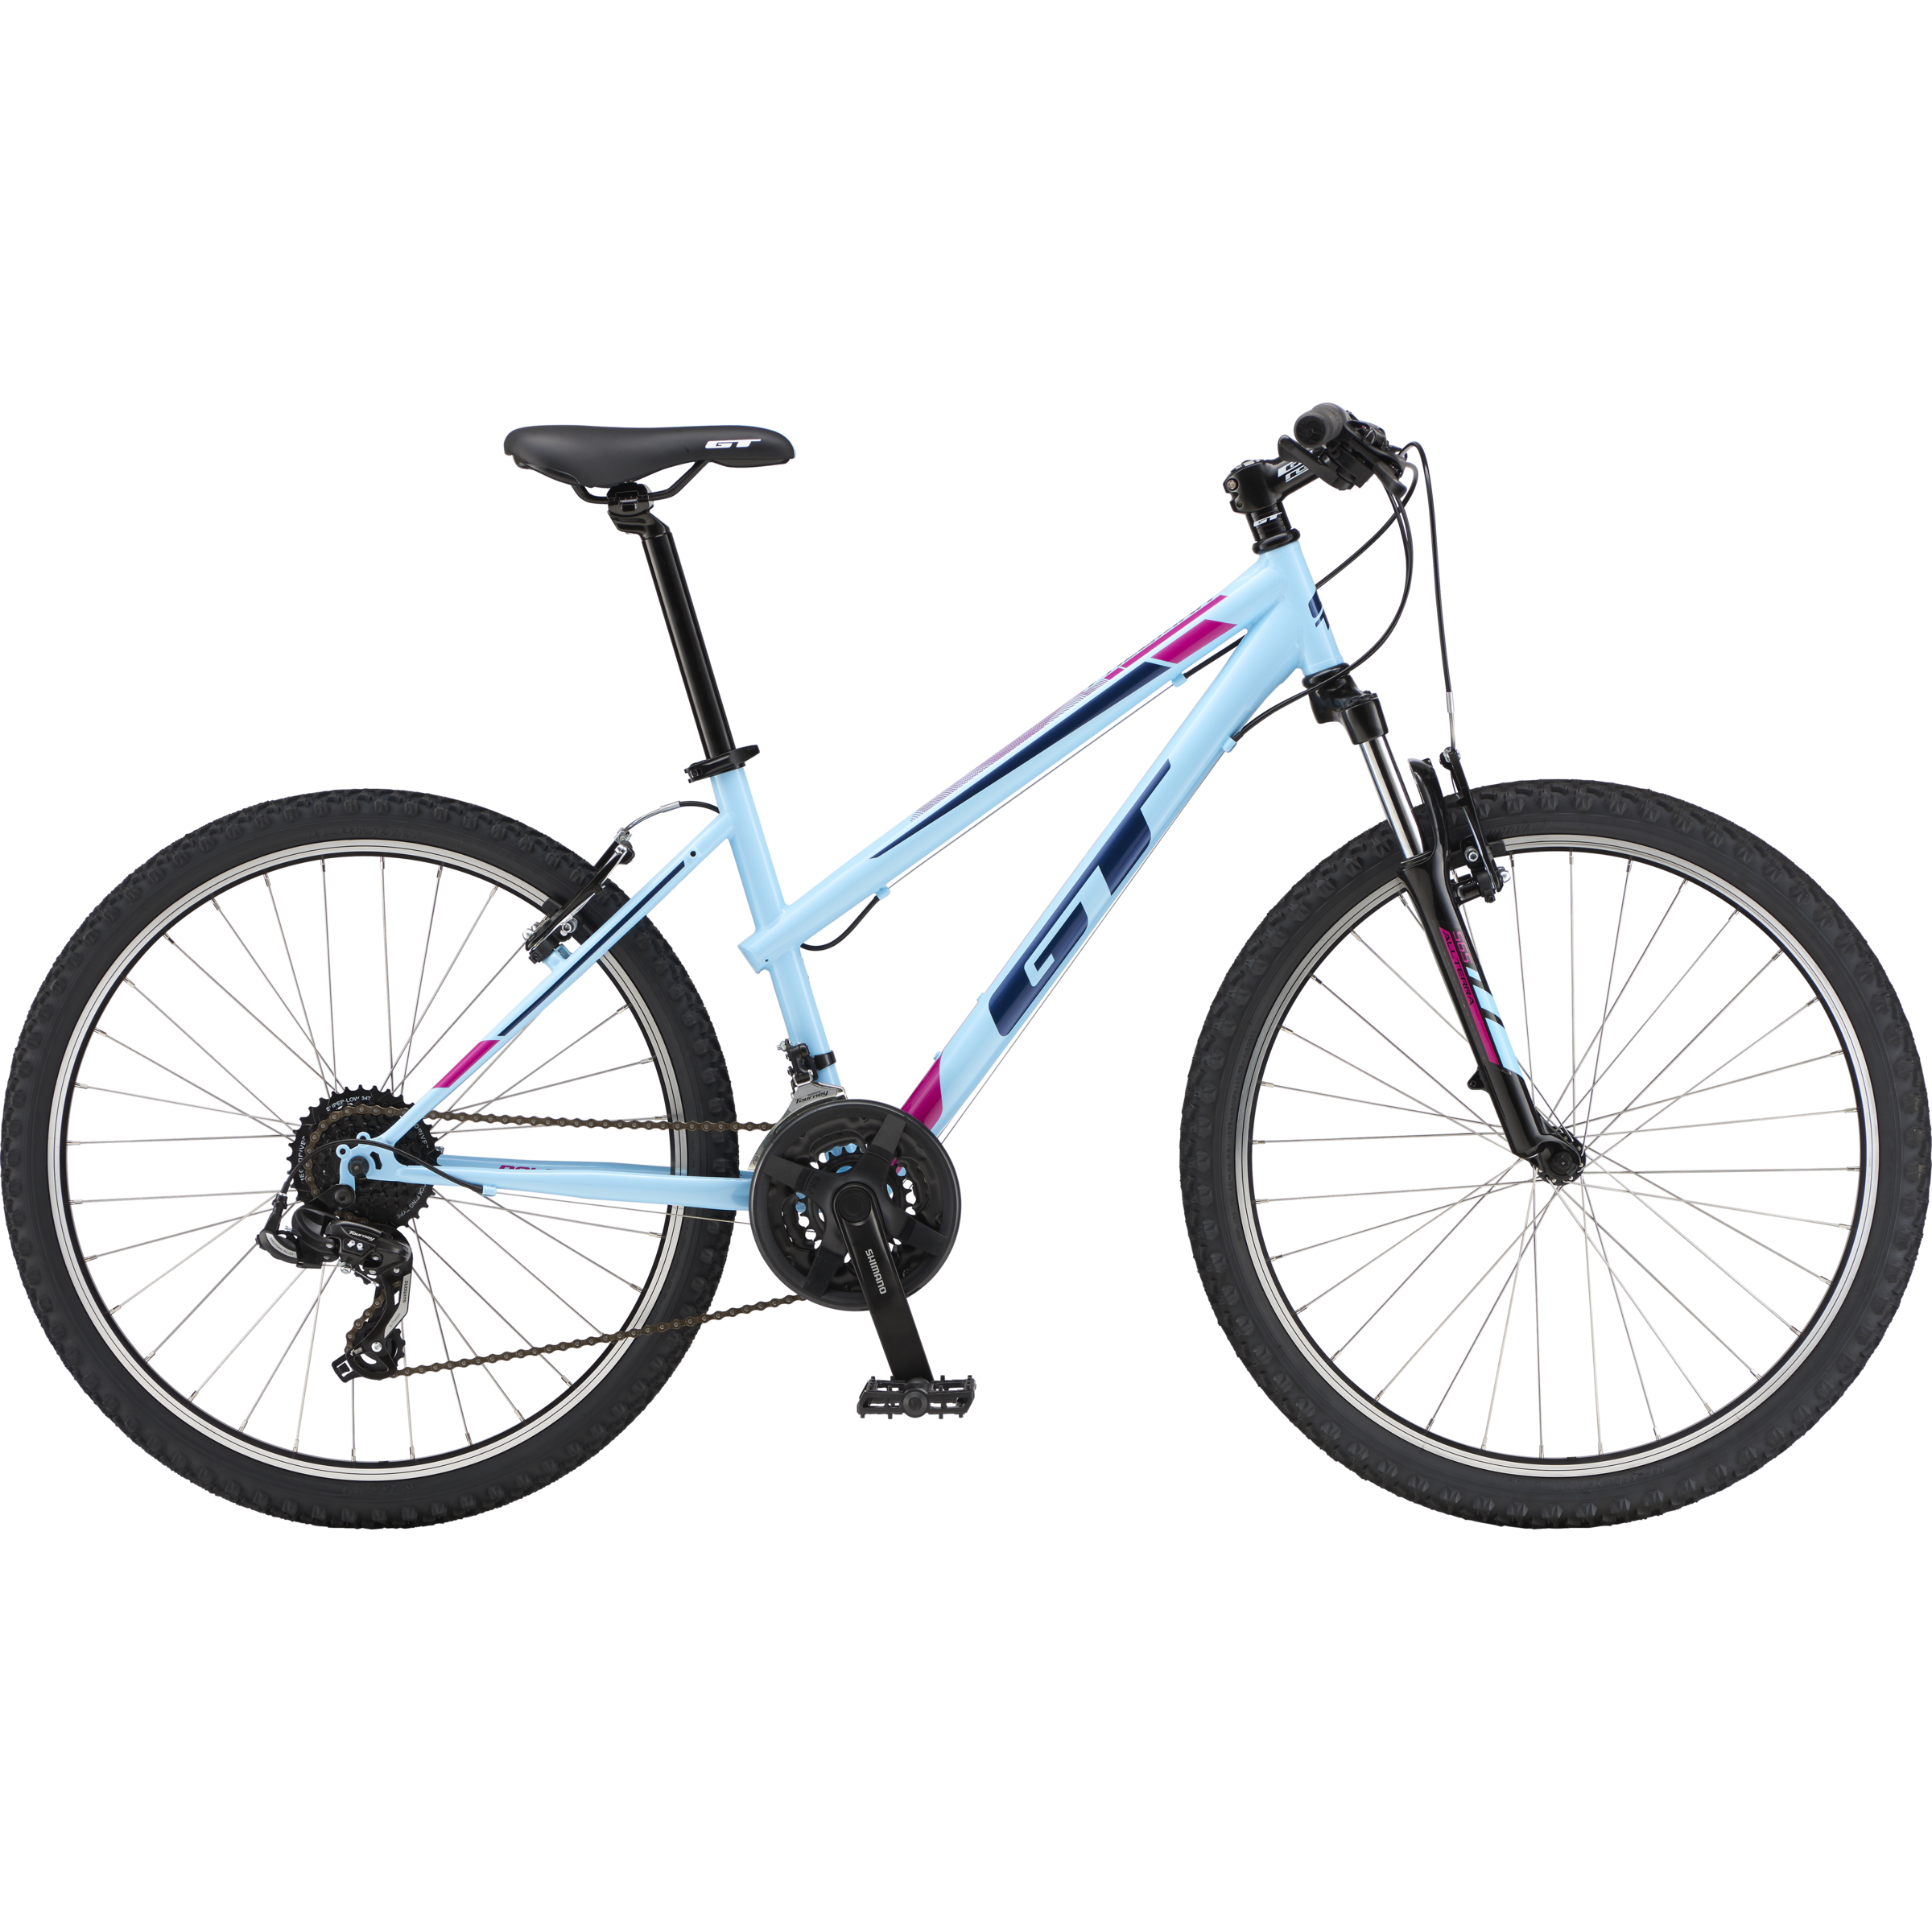 38d8c47a302 GT Palomar Ladies - Recycled Cycles Bicycles & Fitness Fort Collins ...